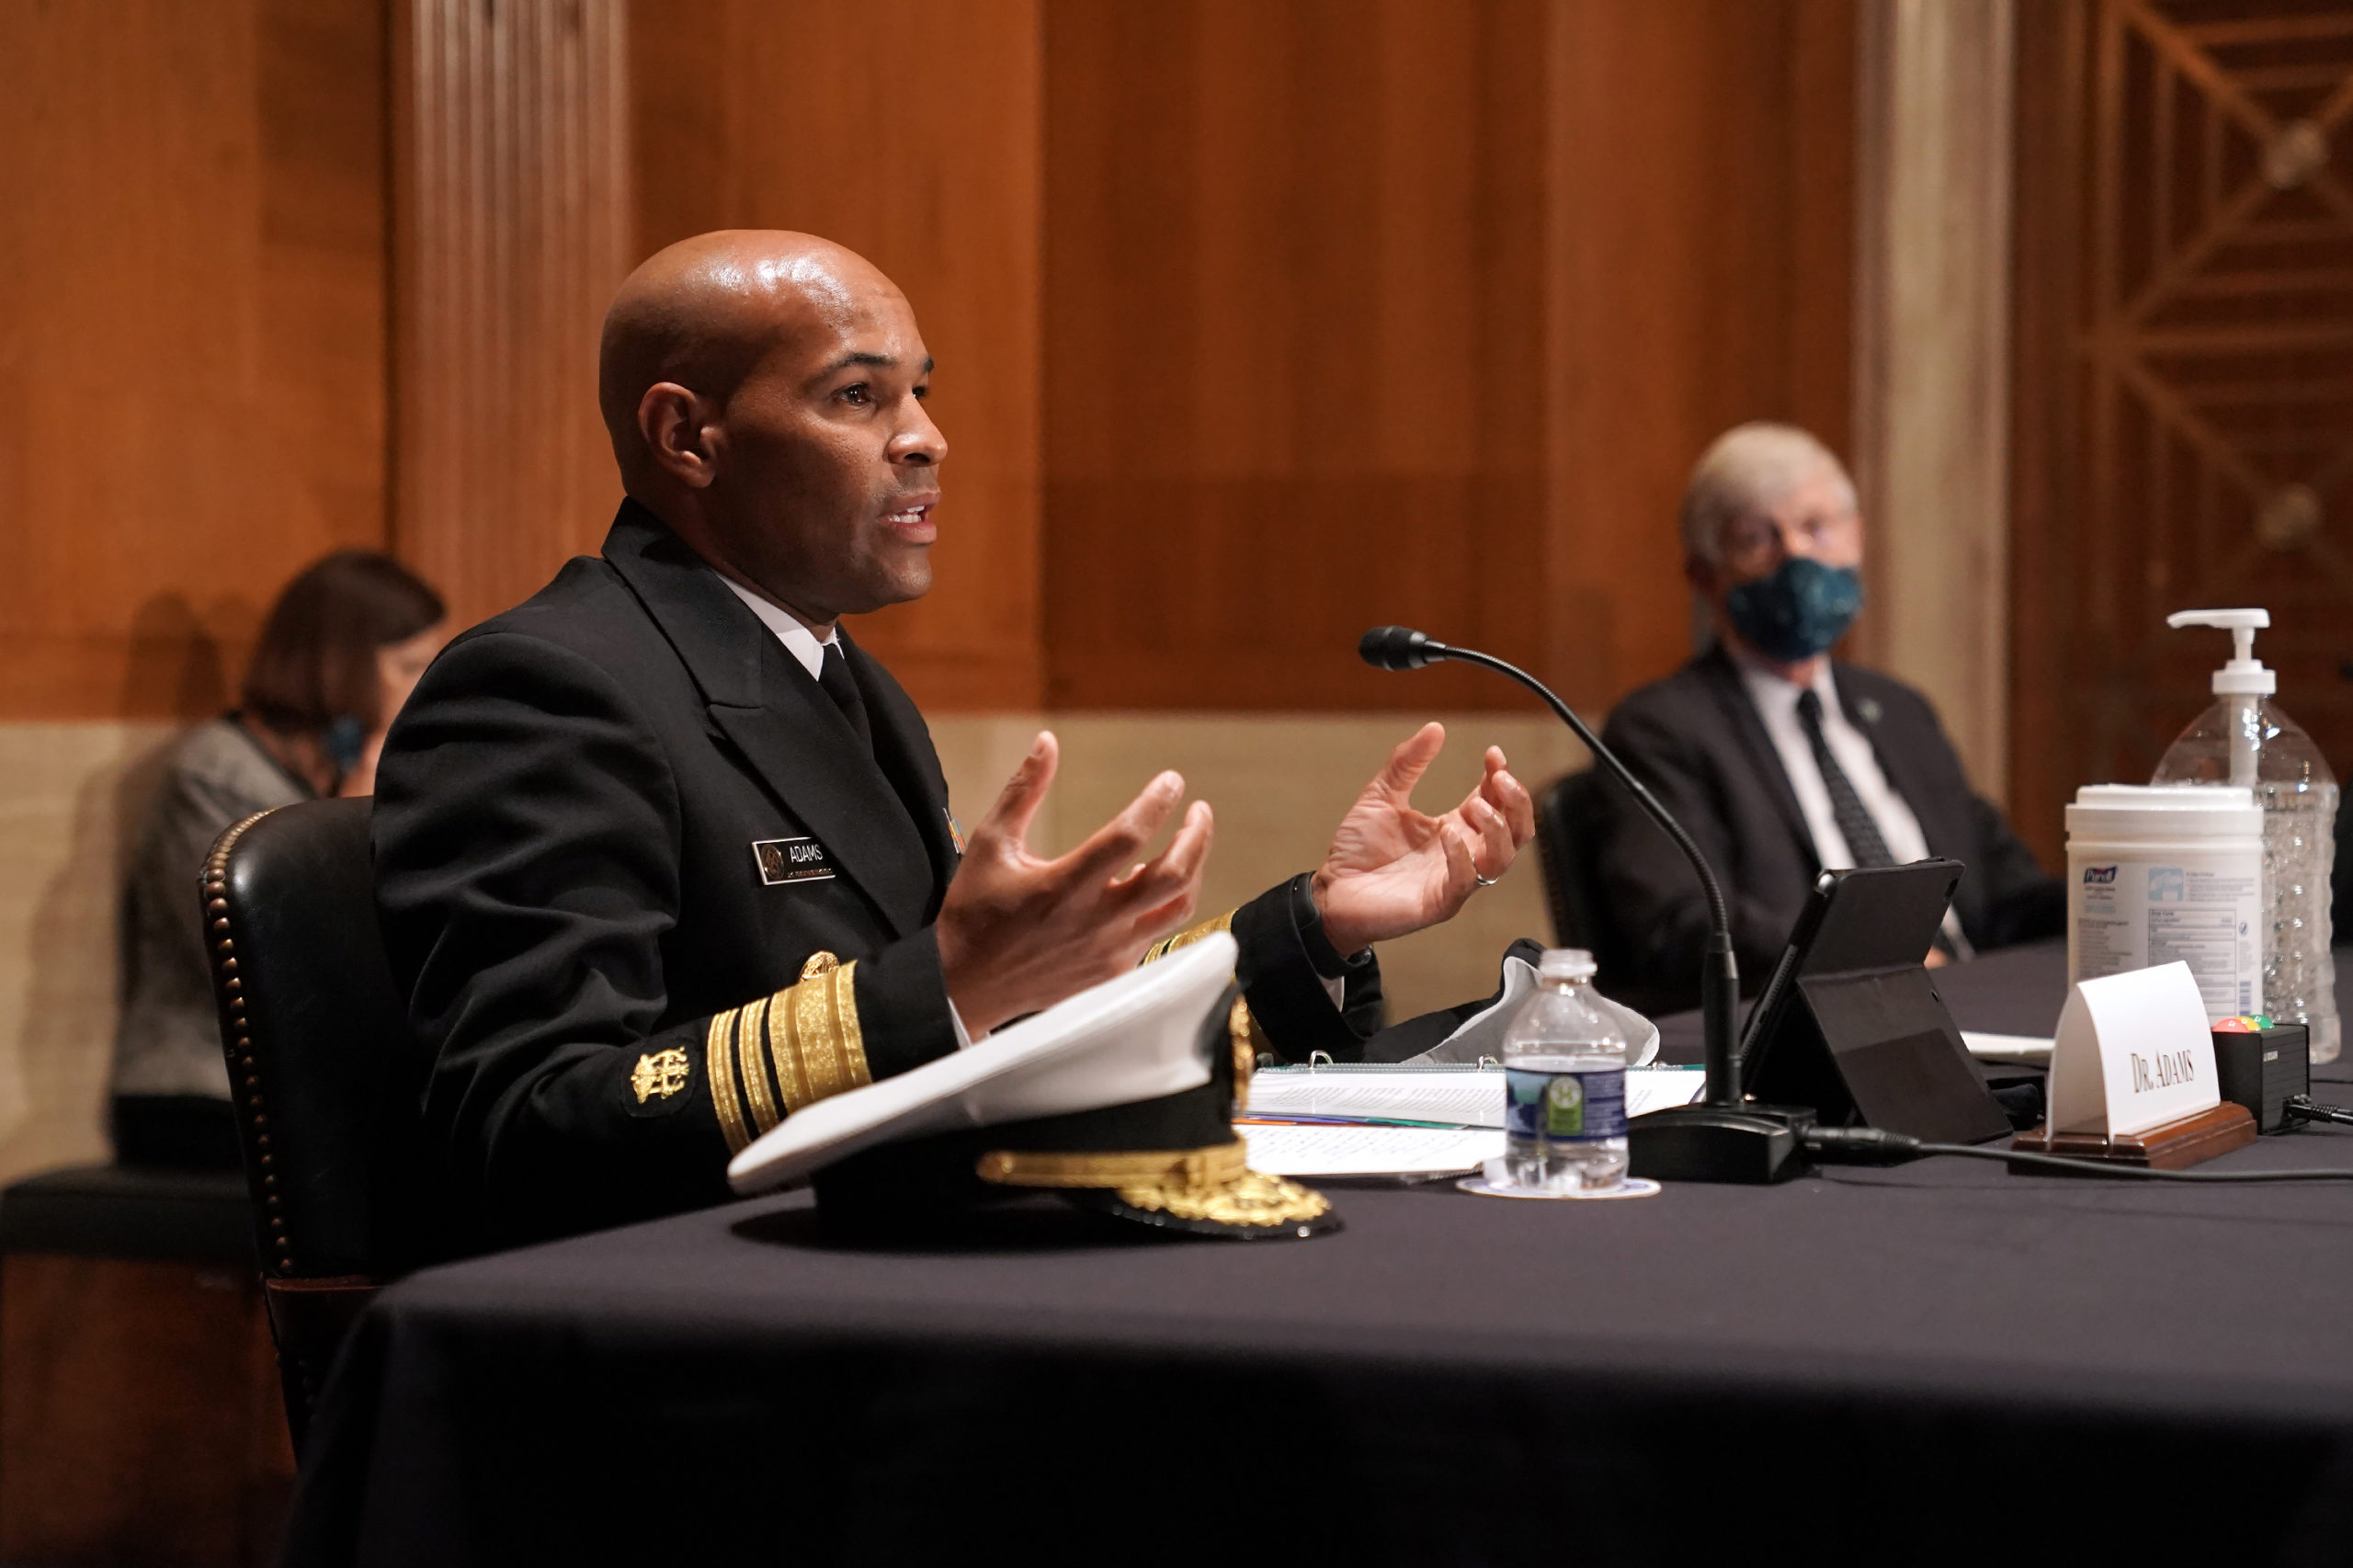 Surgeon General Jerome Adams testifies during a hearing on Sept. 9 in Washington, D.C. to discuss vaccines and the coronavirus pandemic. (Greg Nash/Pool/AFP via Getty Images)